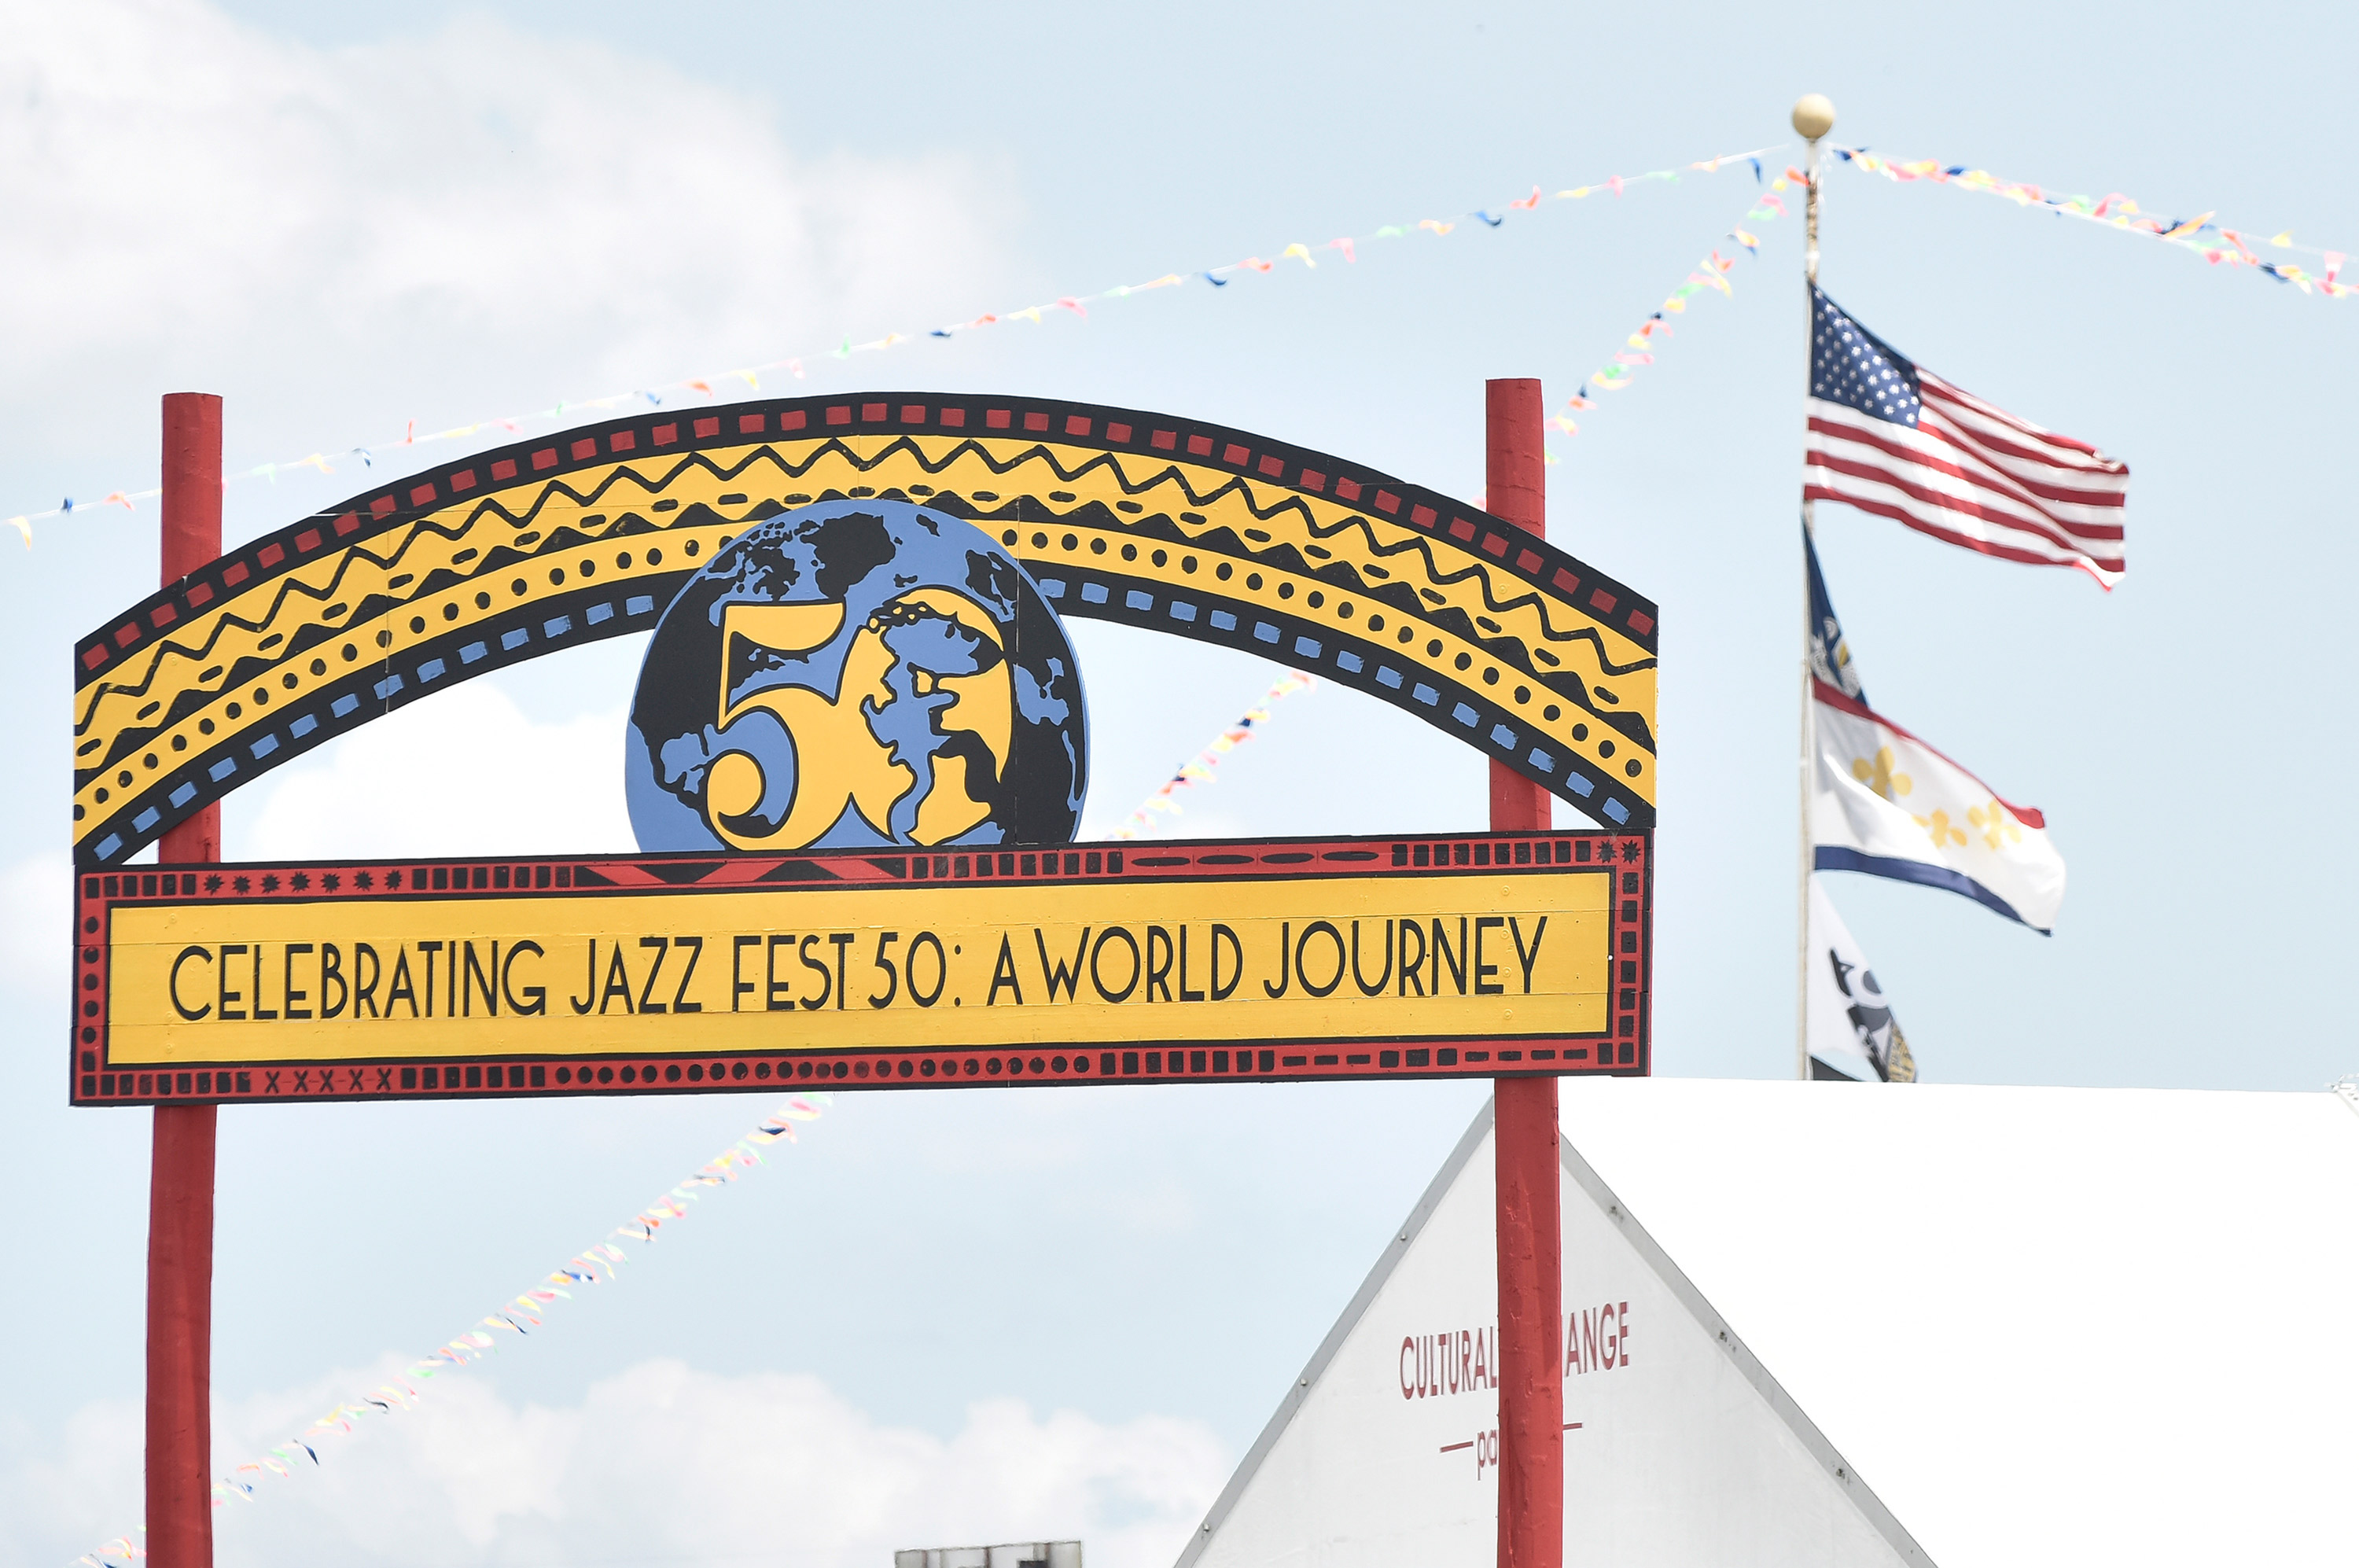 A New Orleans Jazz & Heritage Festival sign is seen at Fair Grounds Race Course on May 2, 2019 in New Orleans.